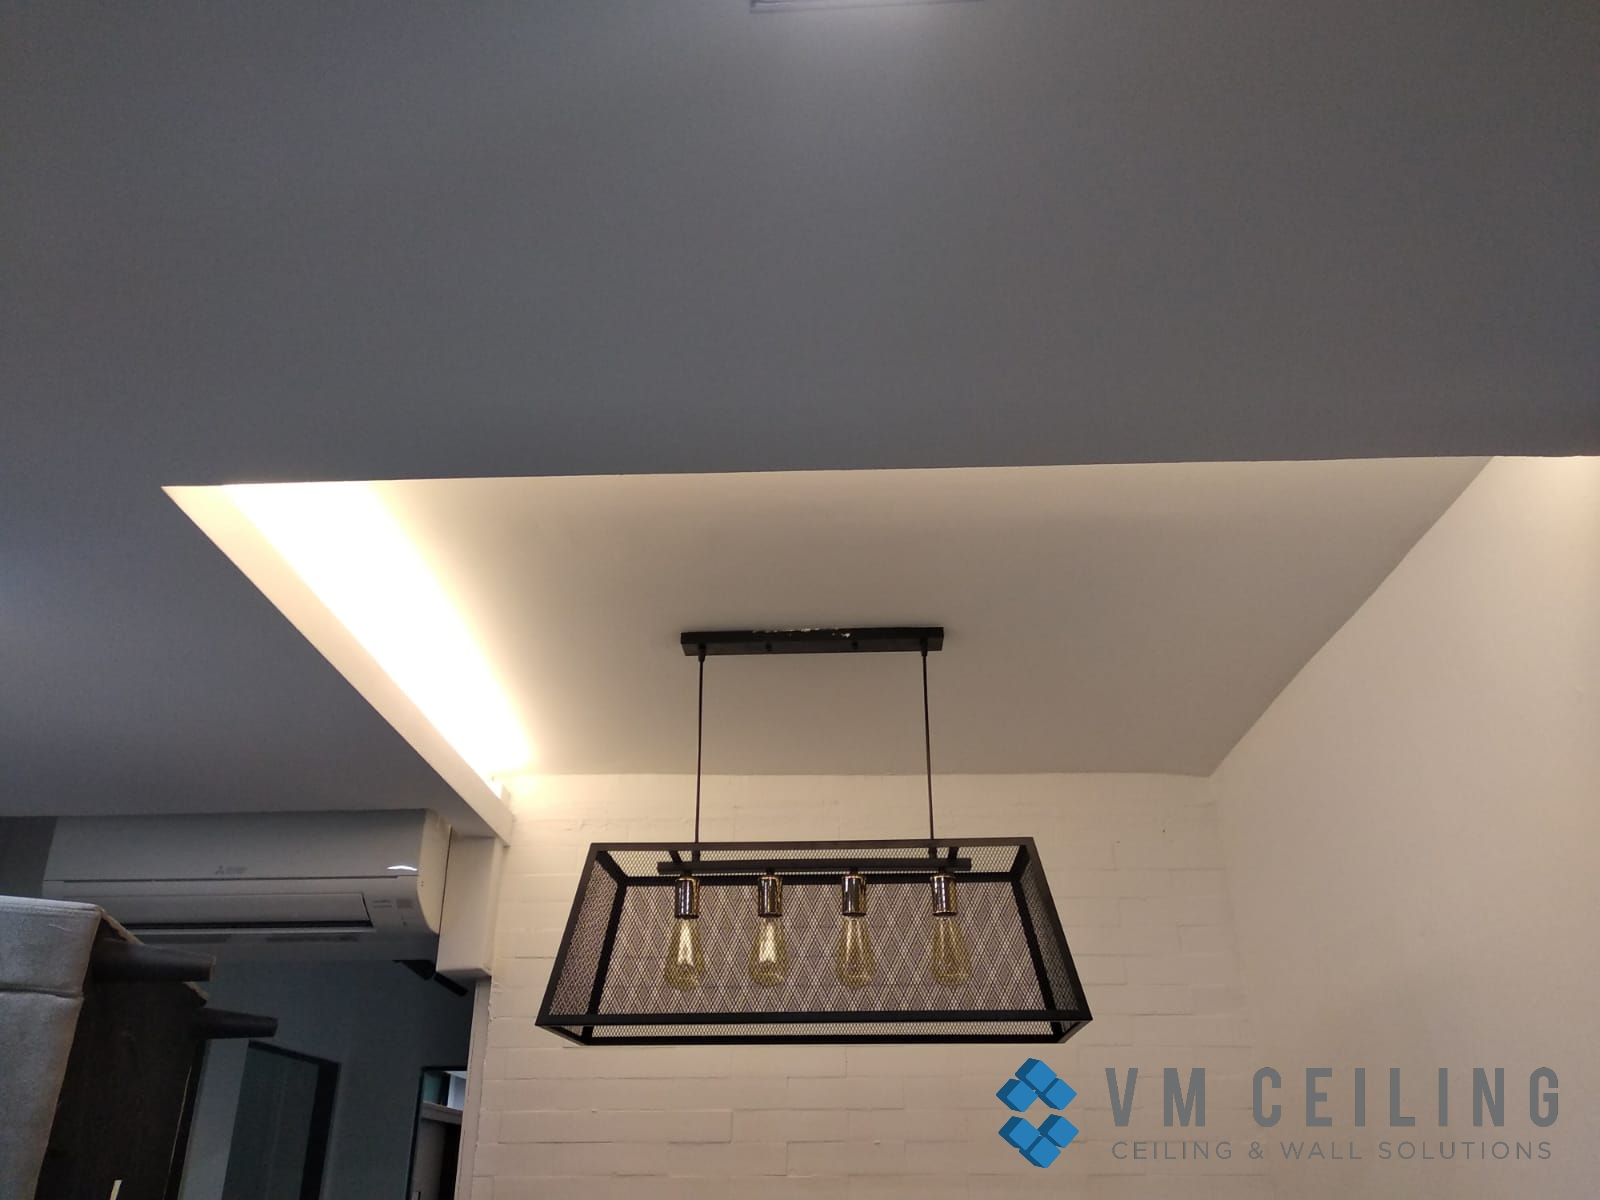 living room false ceiling cove lighting vm ceiling singapore hdb woodlands 1